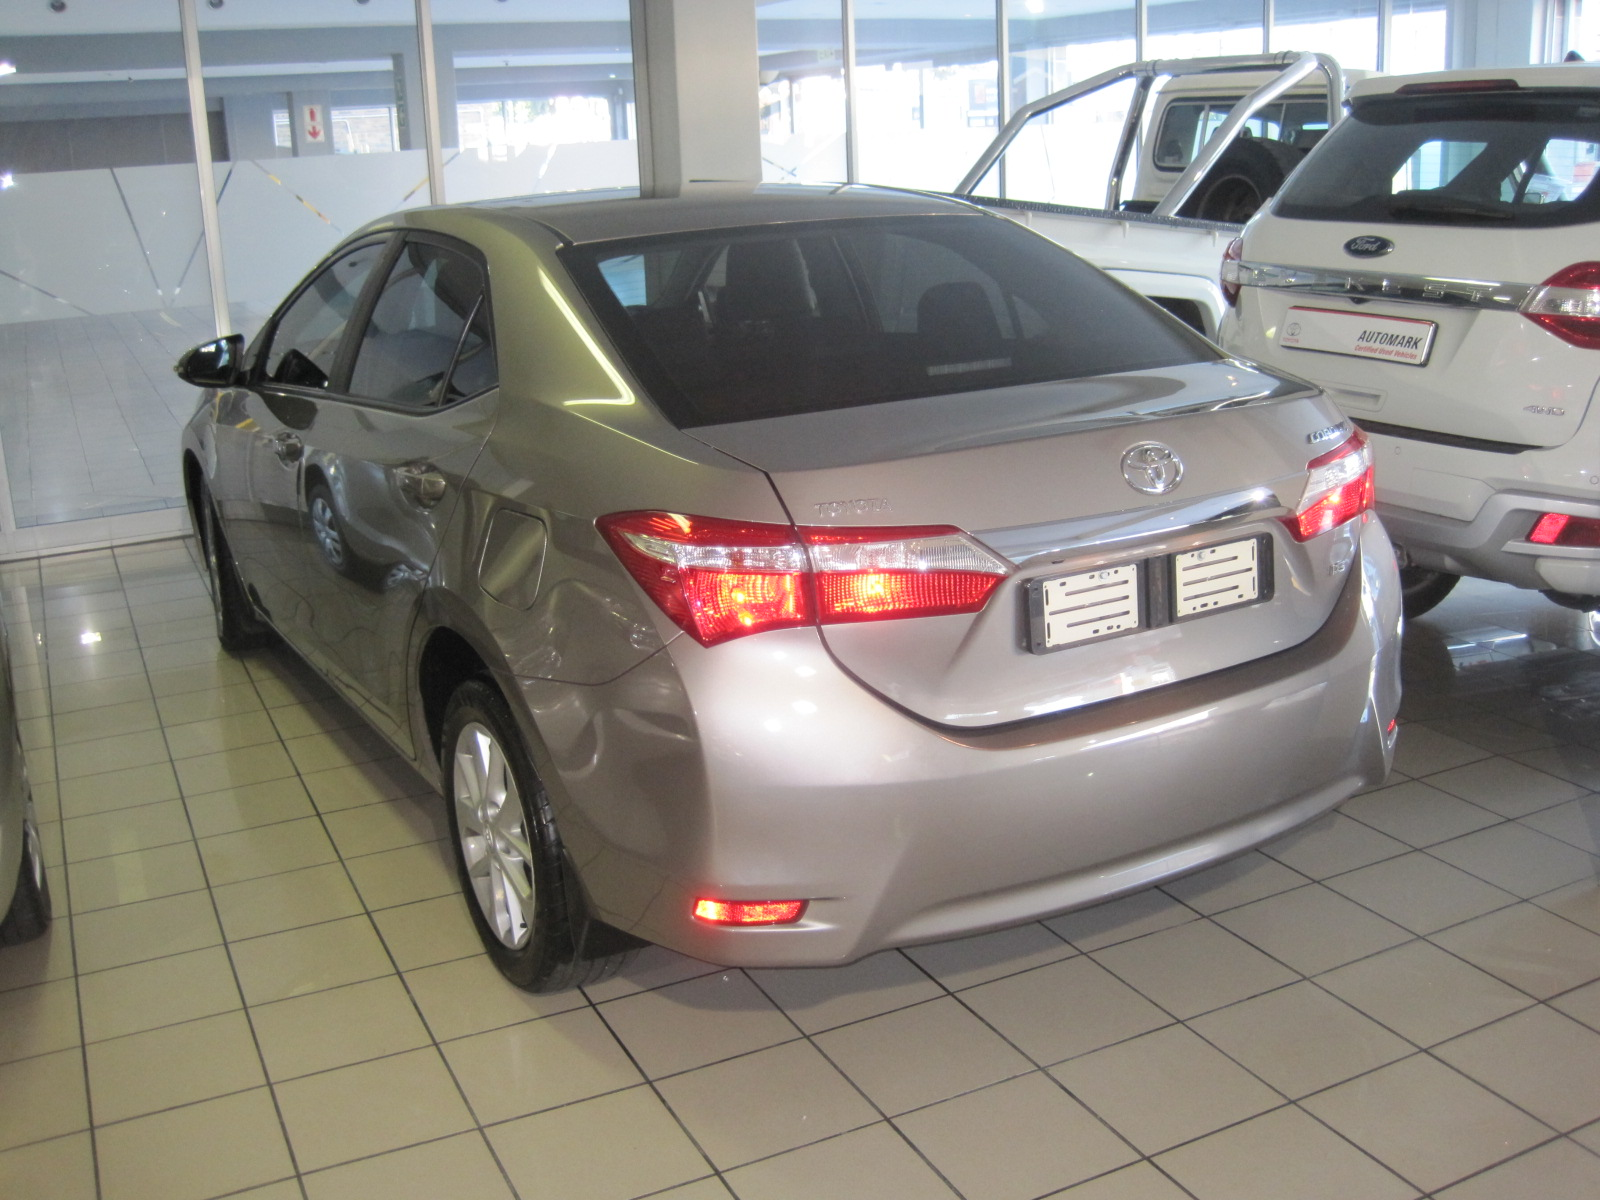 Prestige Toyota Service >> Used and new Hyundai Gumtree Used Vehicles for Sale Cars & OLX cars and bakkies in Cape Town ...